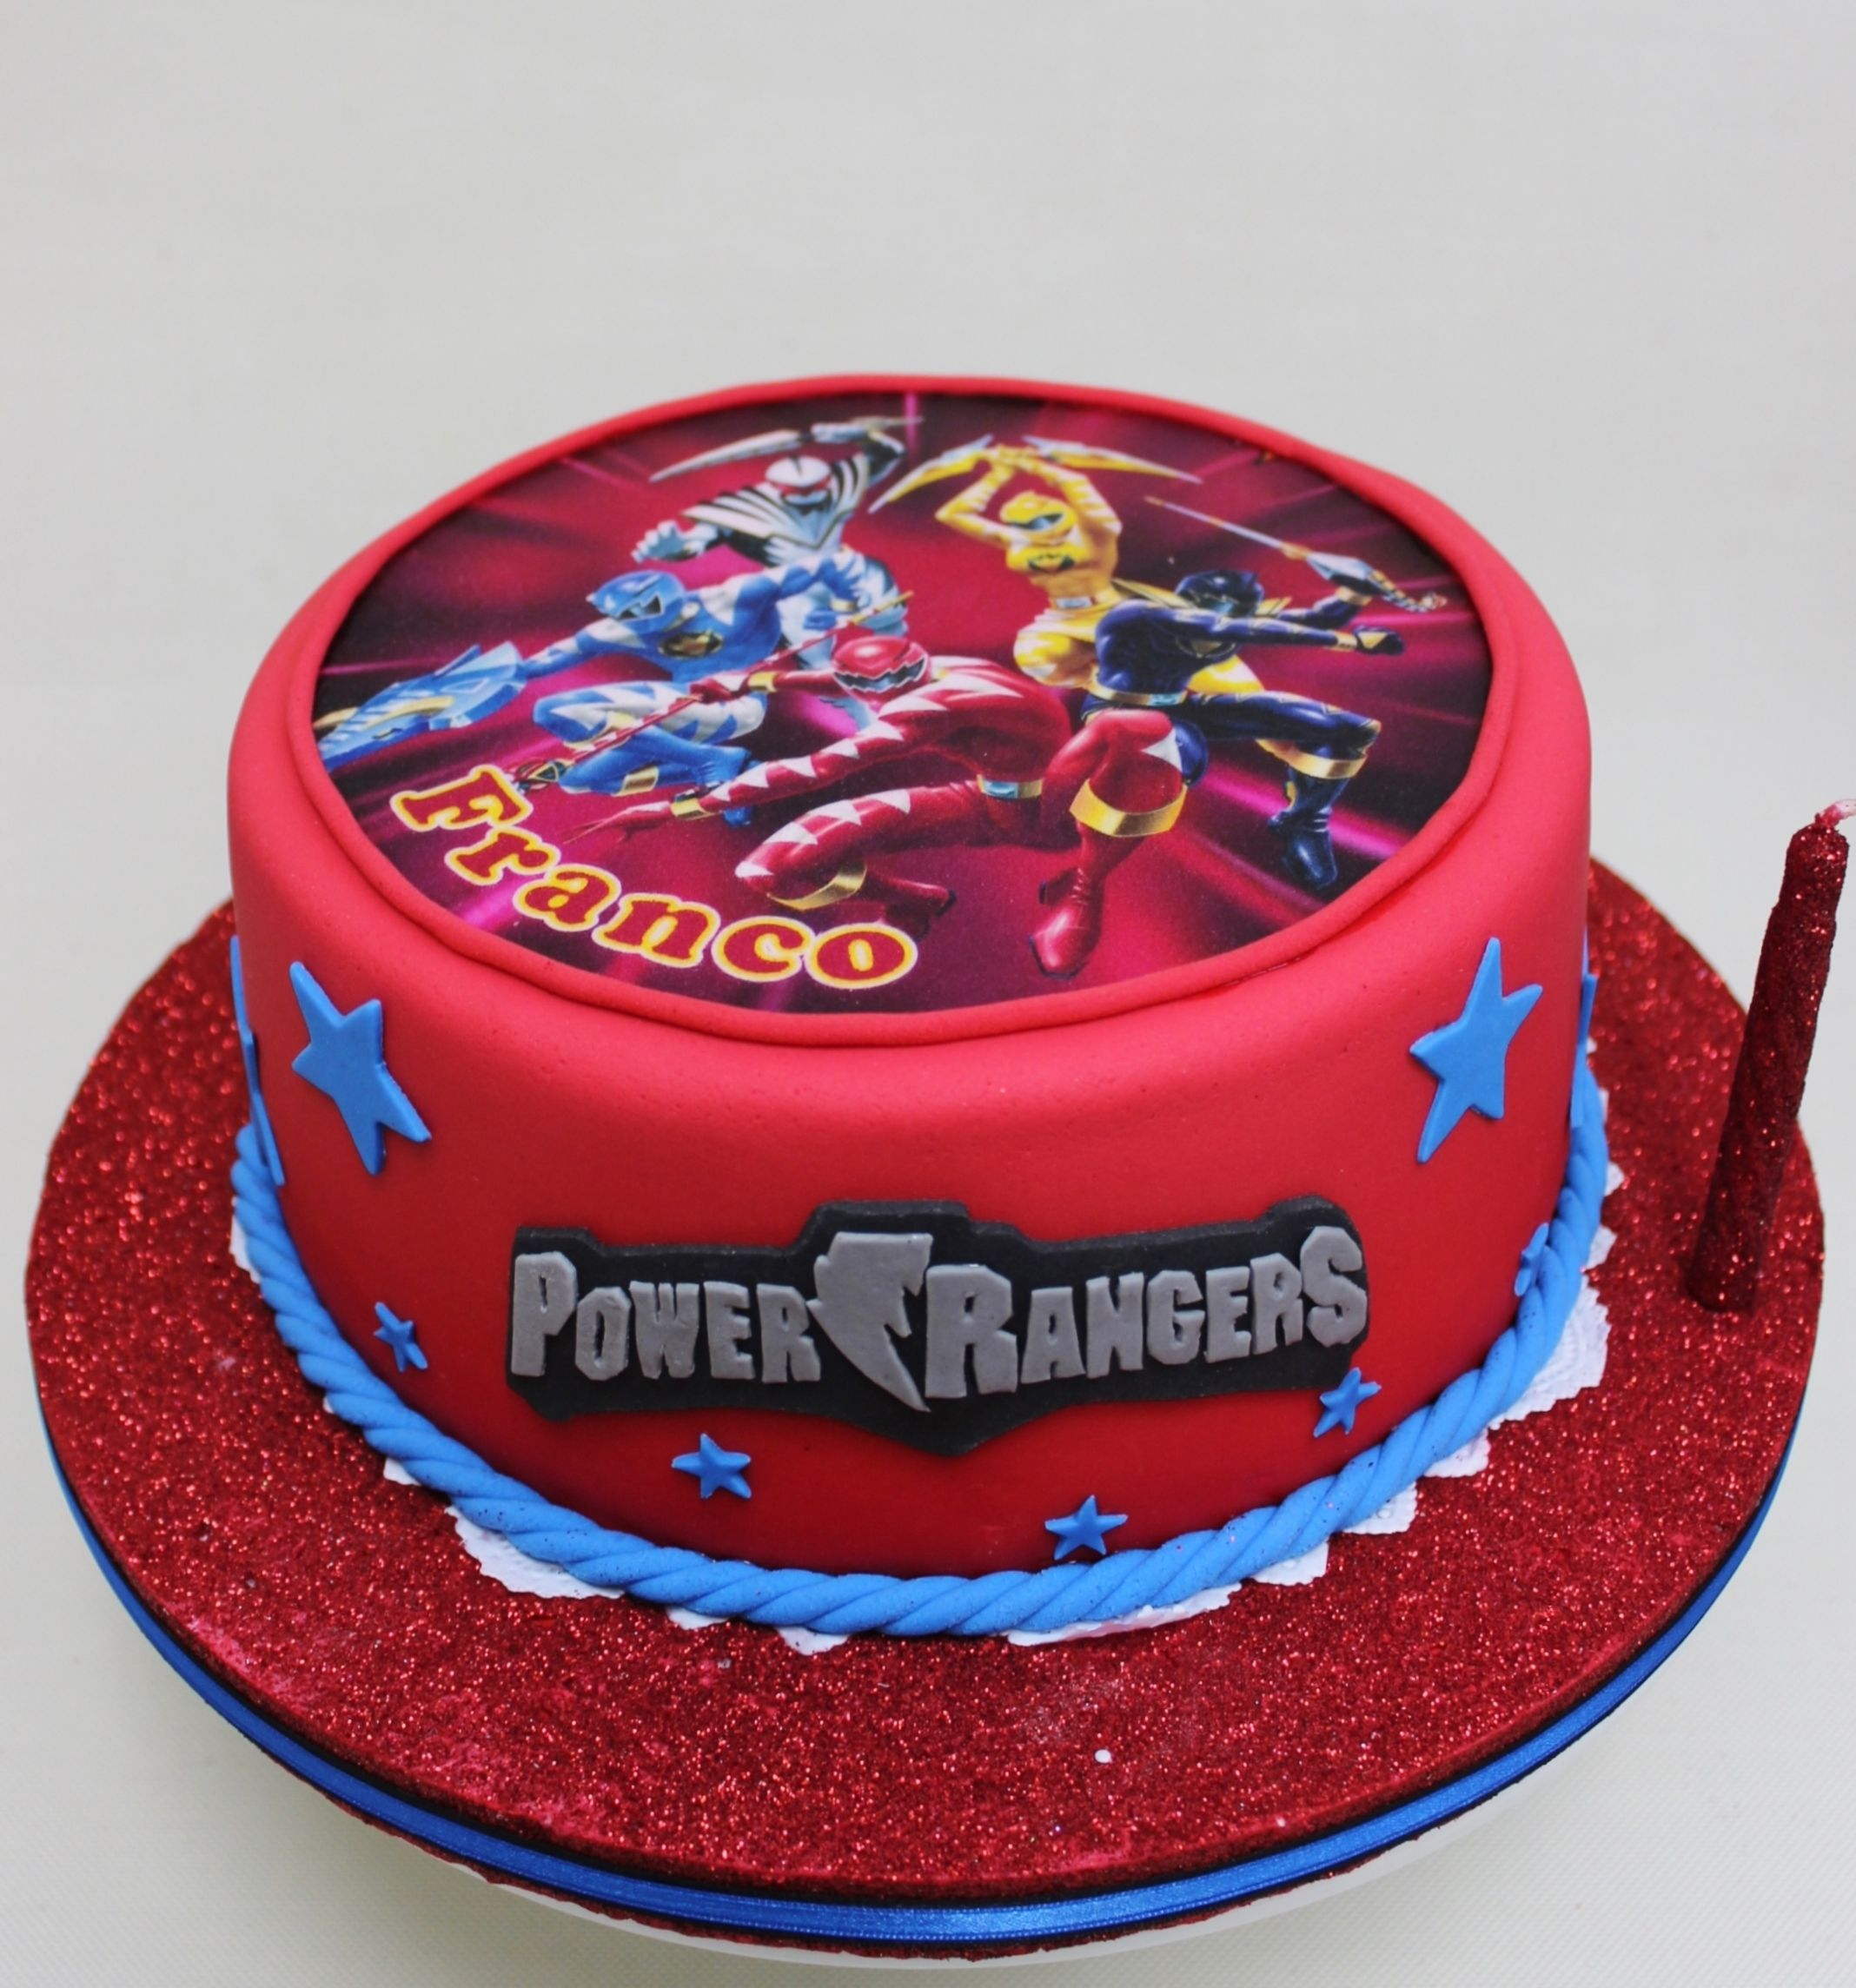 Power Ranger Birthday Cakes Rangers 6th Cake For A Boy Jude Christopher In